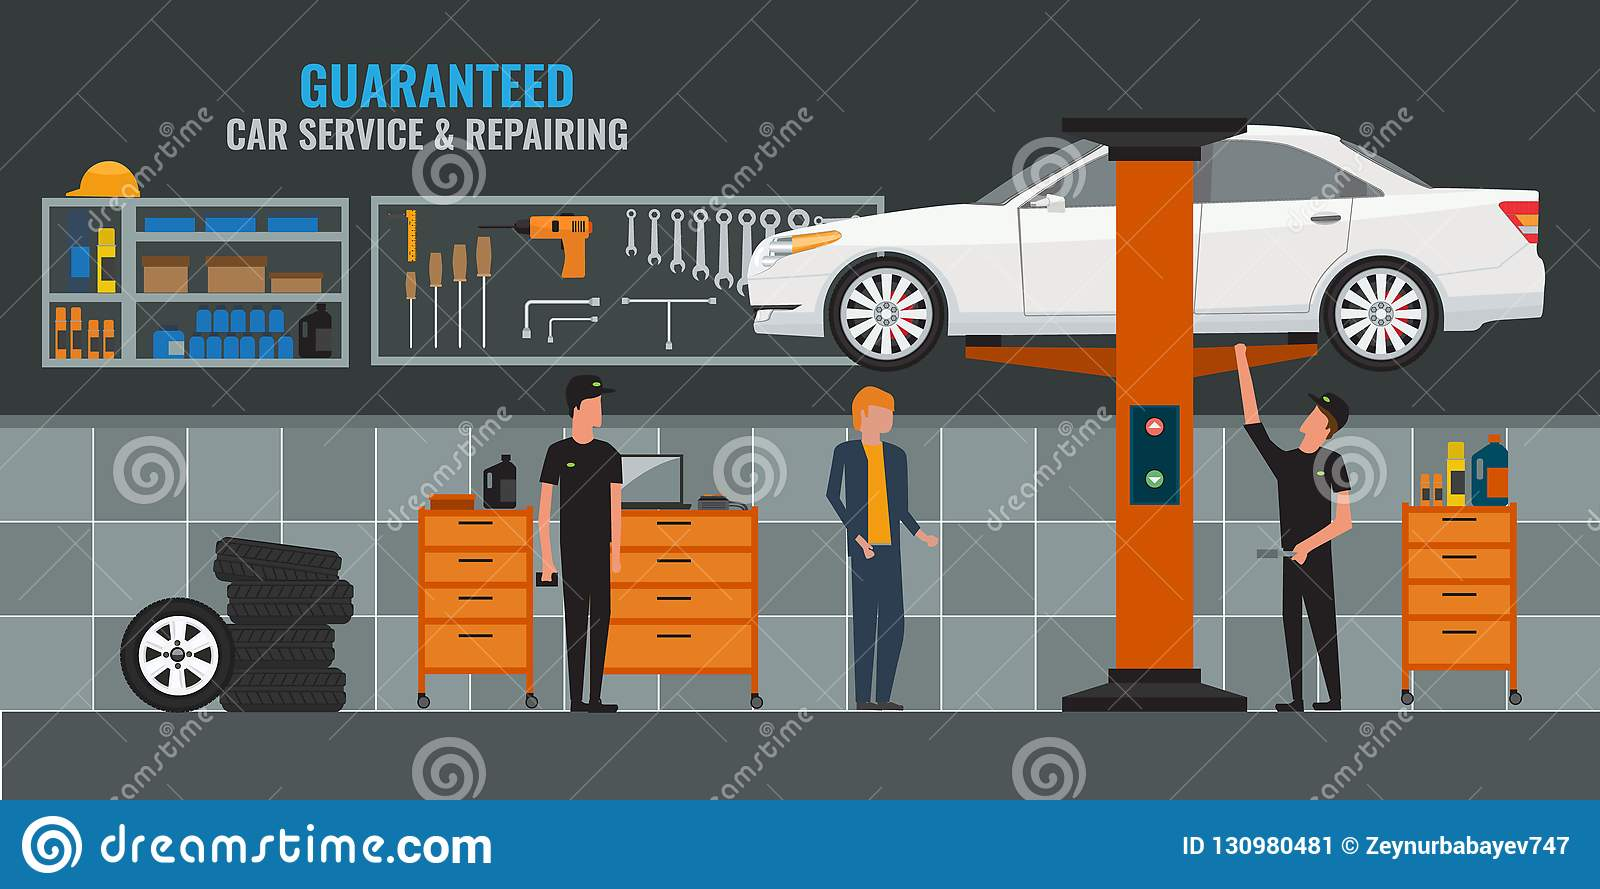 Auto repair shop interior with mechanics or masters working and fixing cars, professional service. Car on the lift